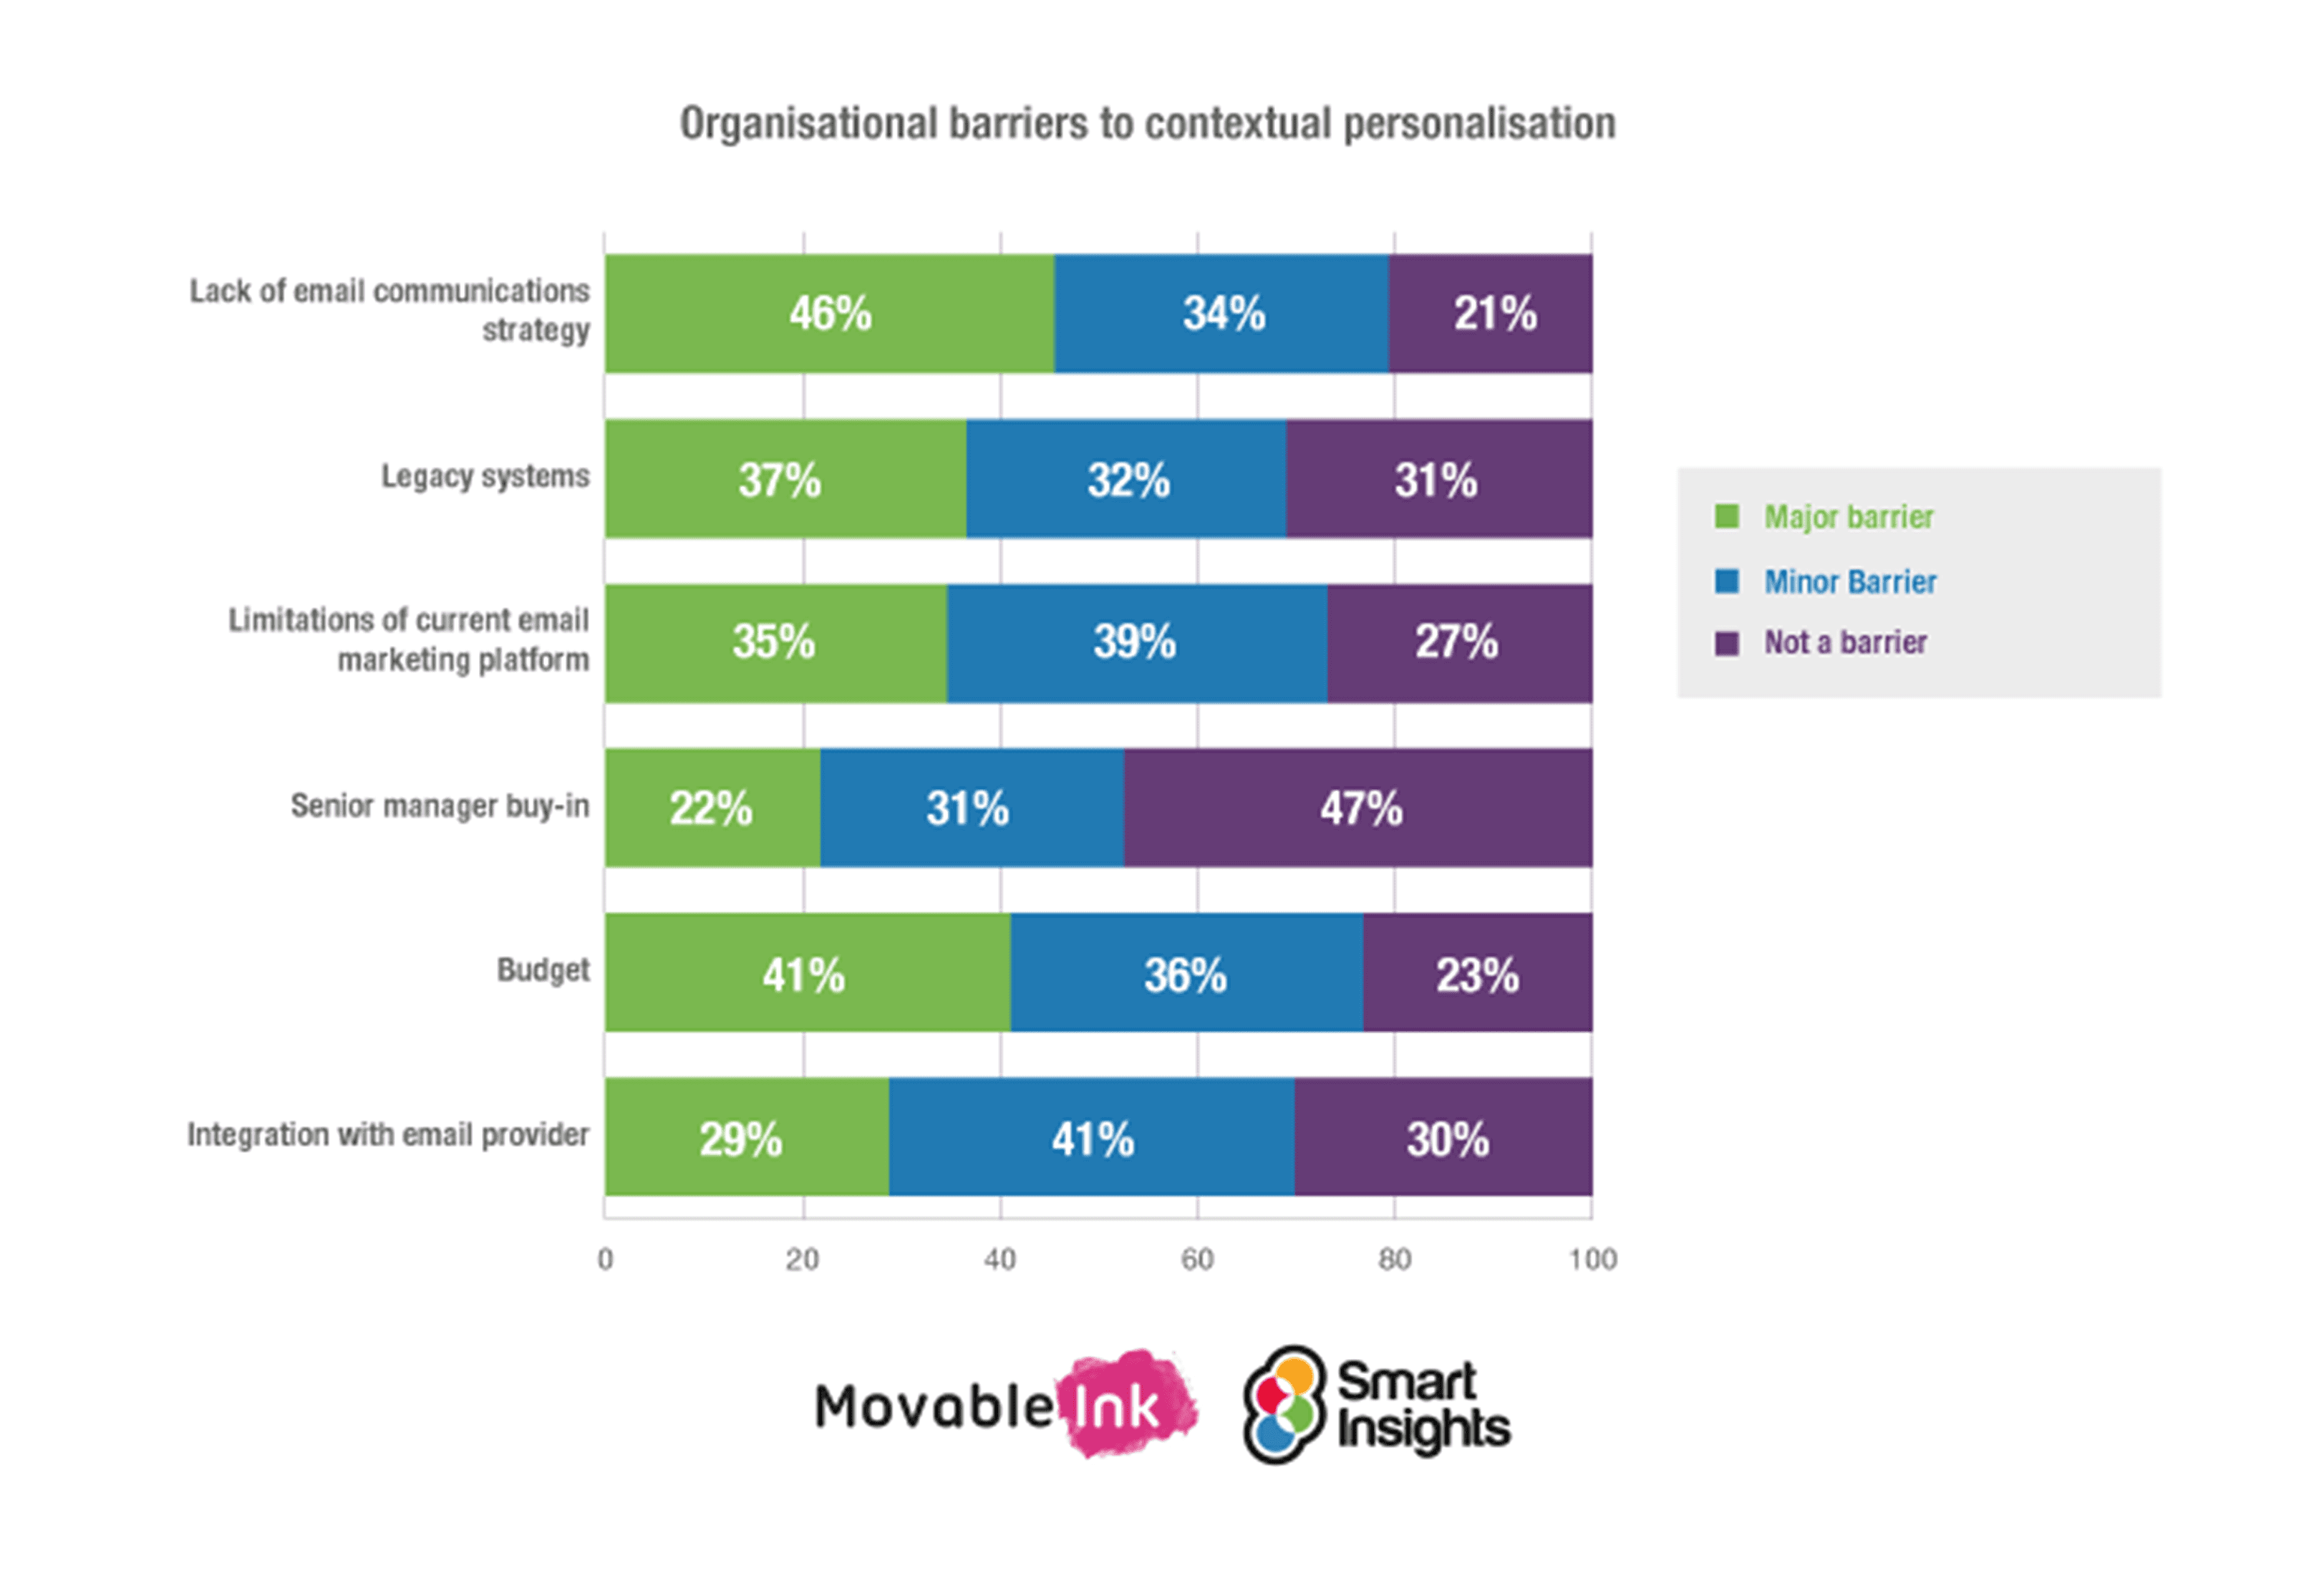 Organisational barriers to contextual personalisation